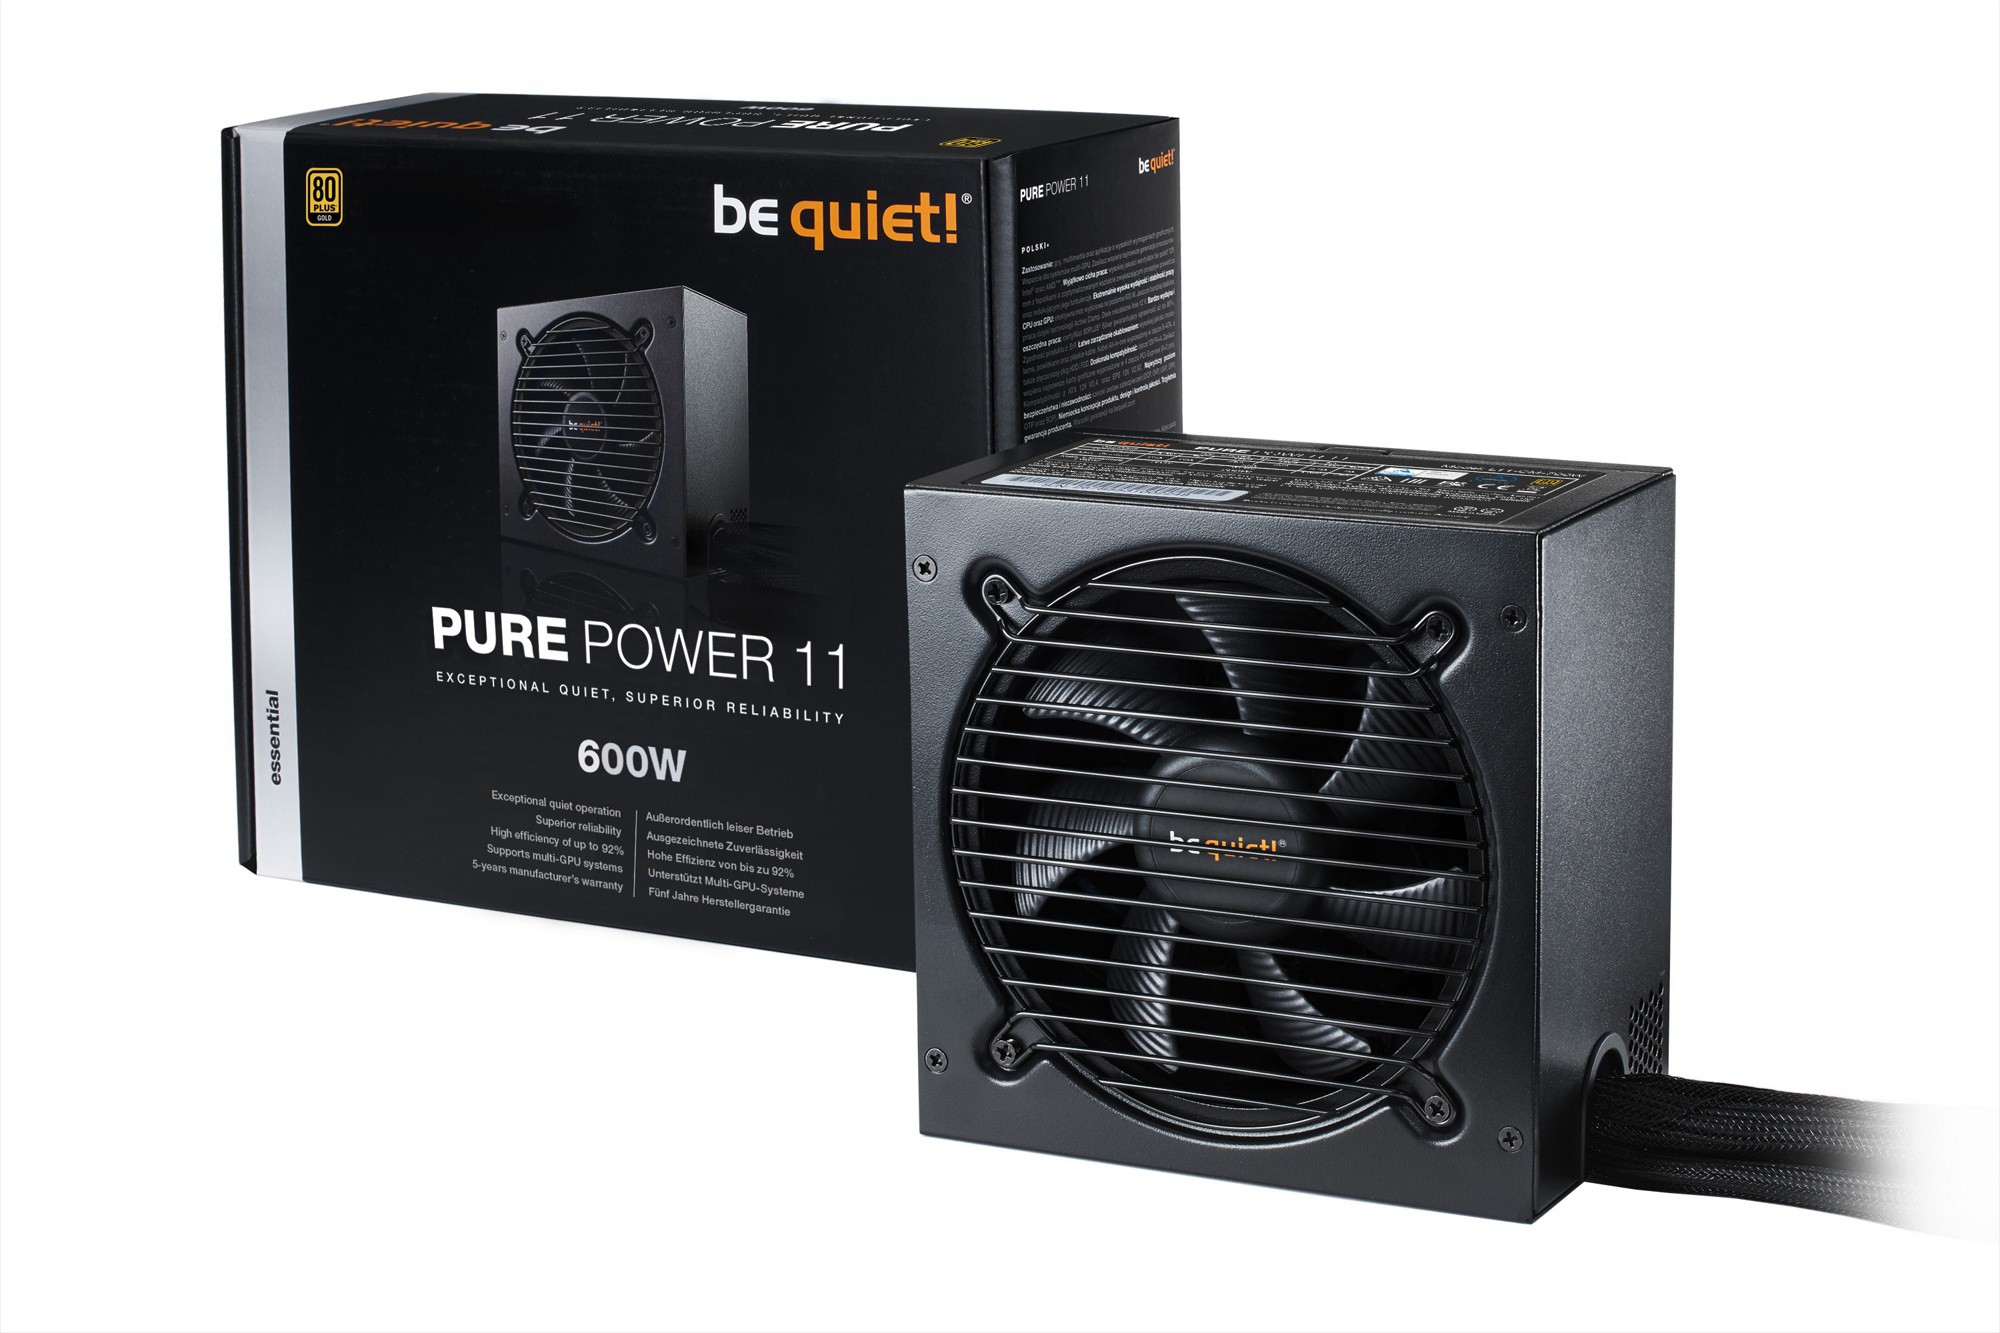 Блок питания 600W be quiet! Pure Power 11 (BN294) (120мм, 24+8pin, 4x6/8pin, 3xMolex, 6xSATA, 80+ Gold)